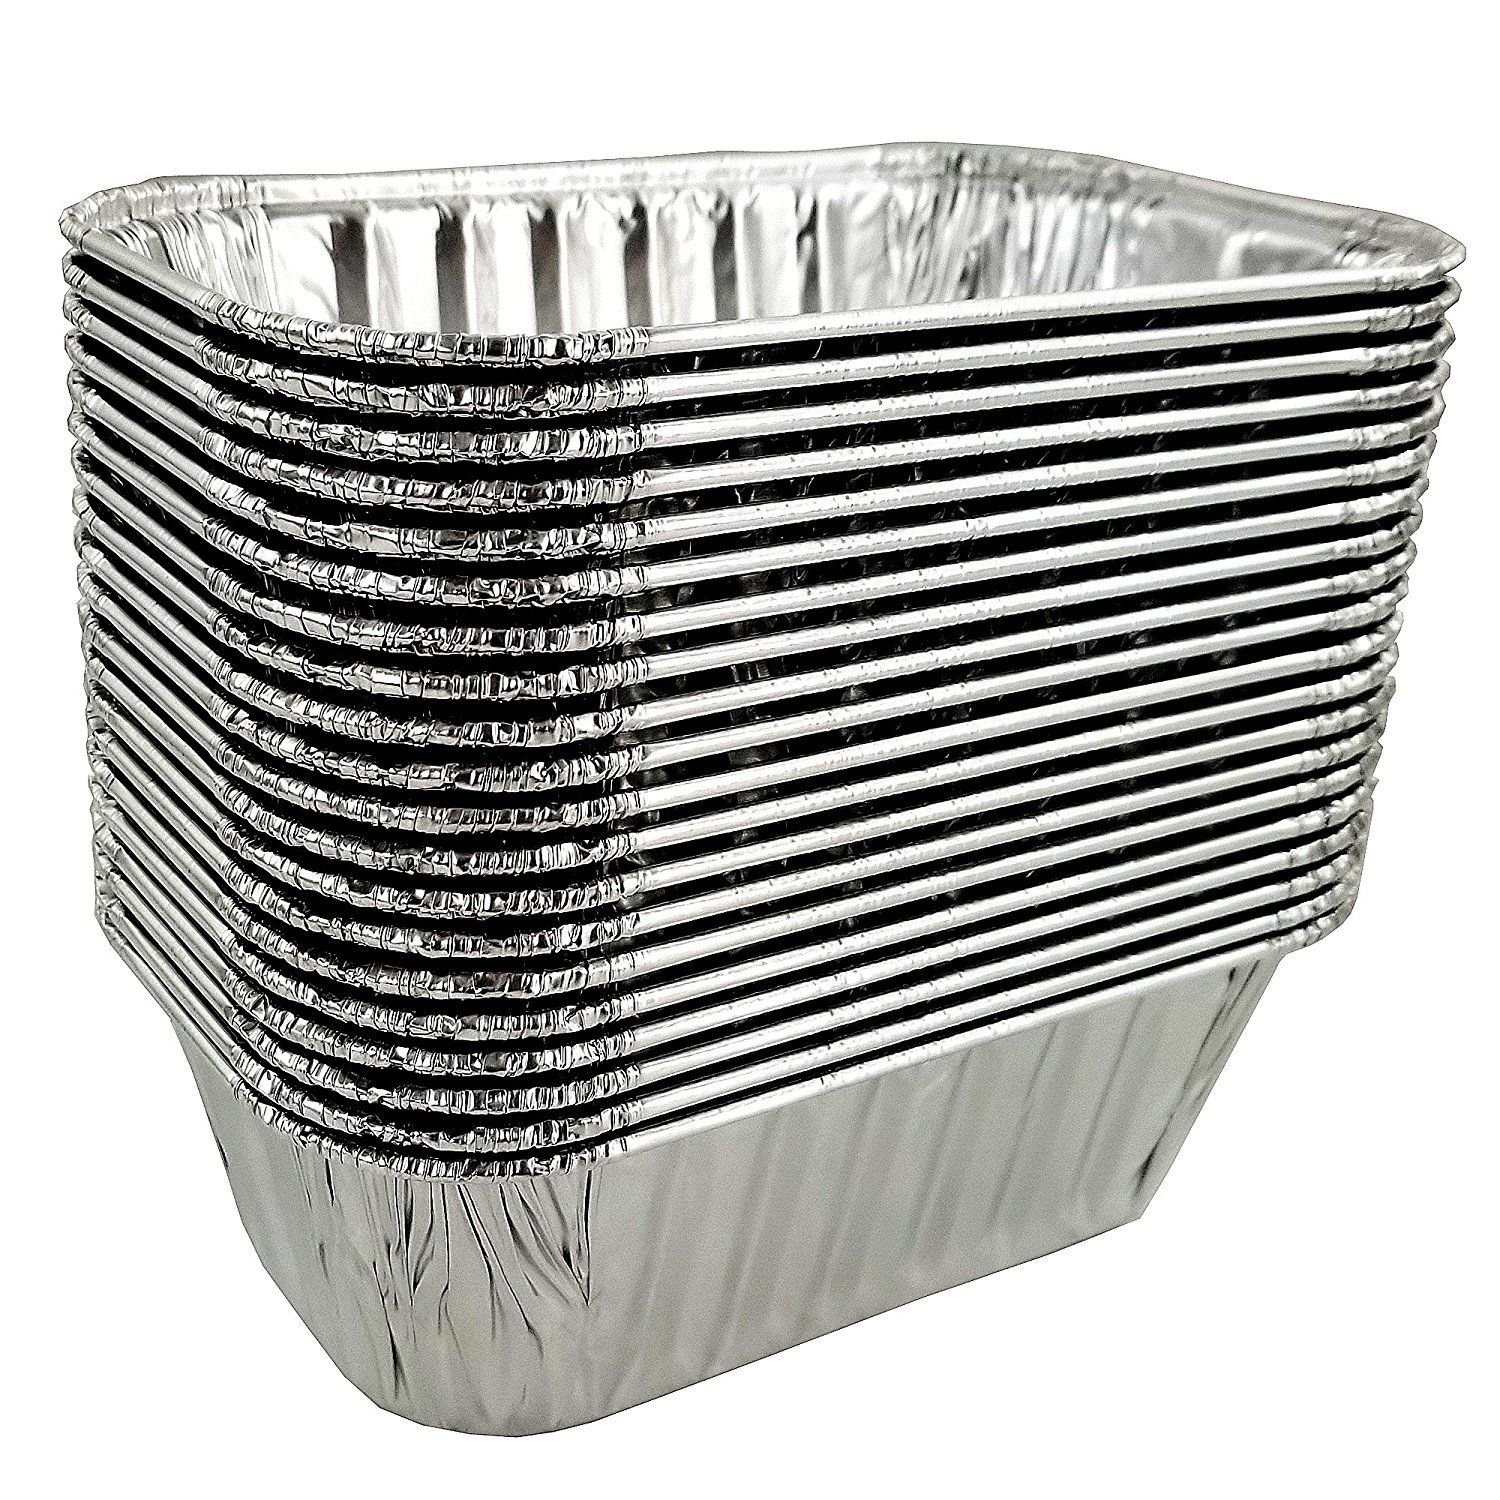 Pactogo Disposable 1 lb. Aluminum Foil Mini Loaf Pans with Clear Dome Lids (Pack of 100 Sets) by PACTOGO (Image #6)